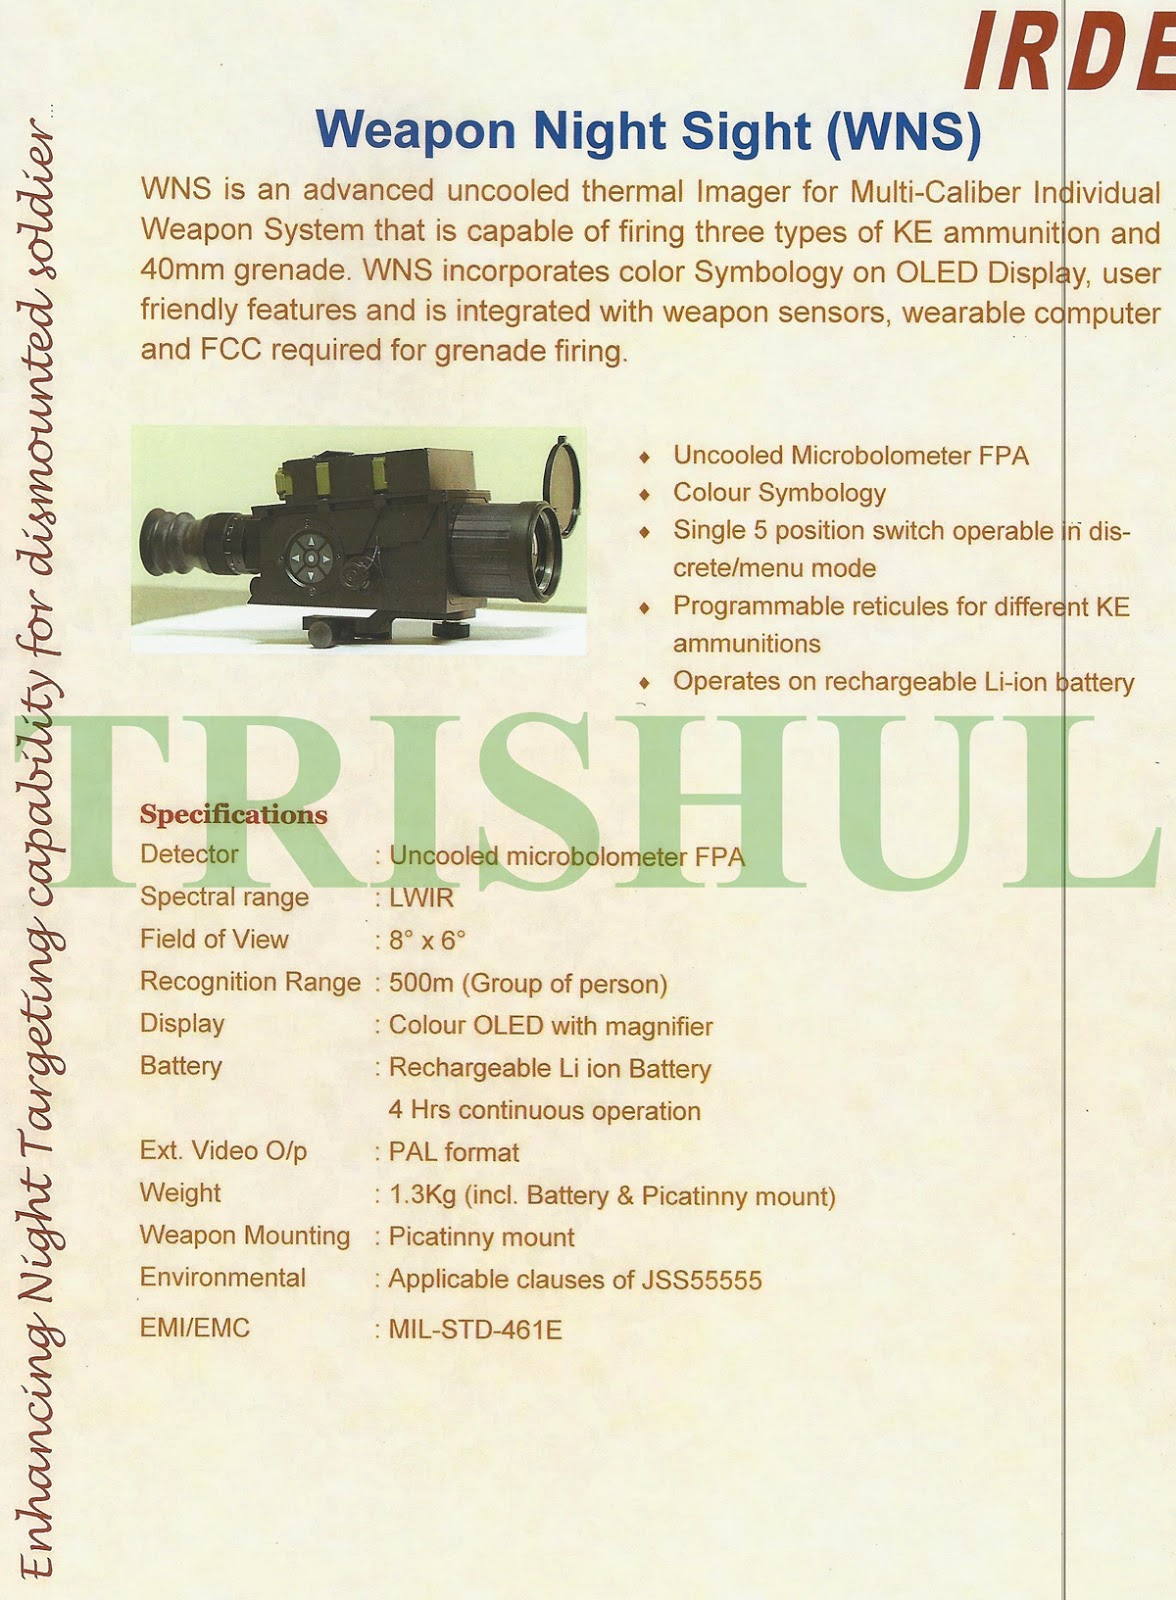 Drdo multical rifle unveiled page 7 - Drdo Multipurpose Sight For Multi Cal Rifle